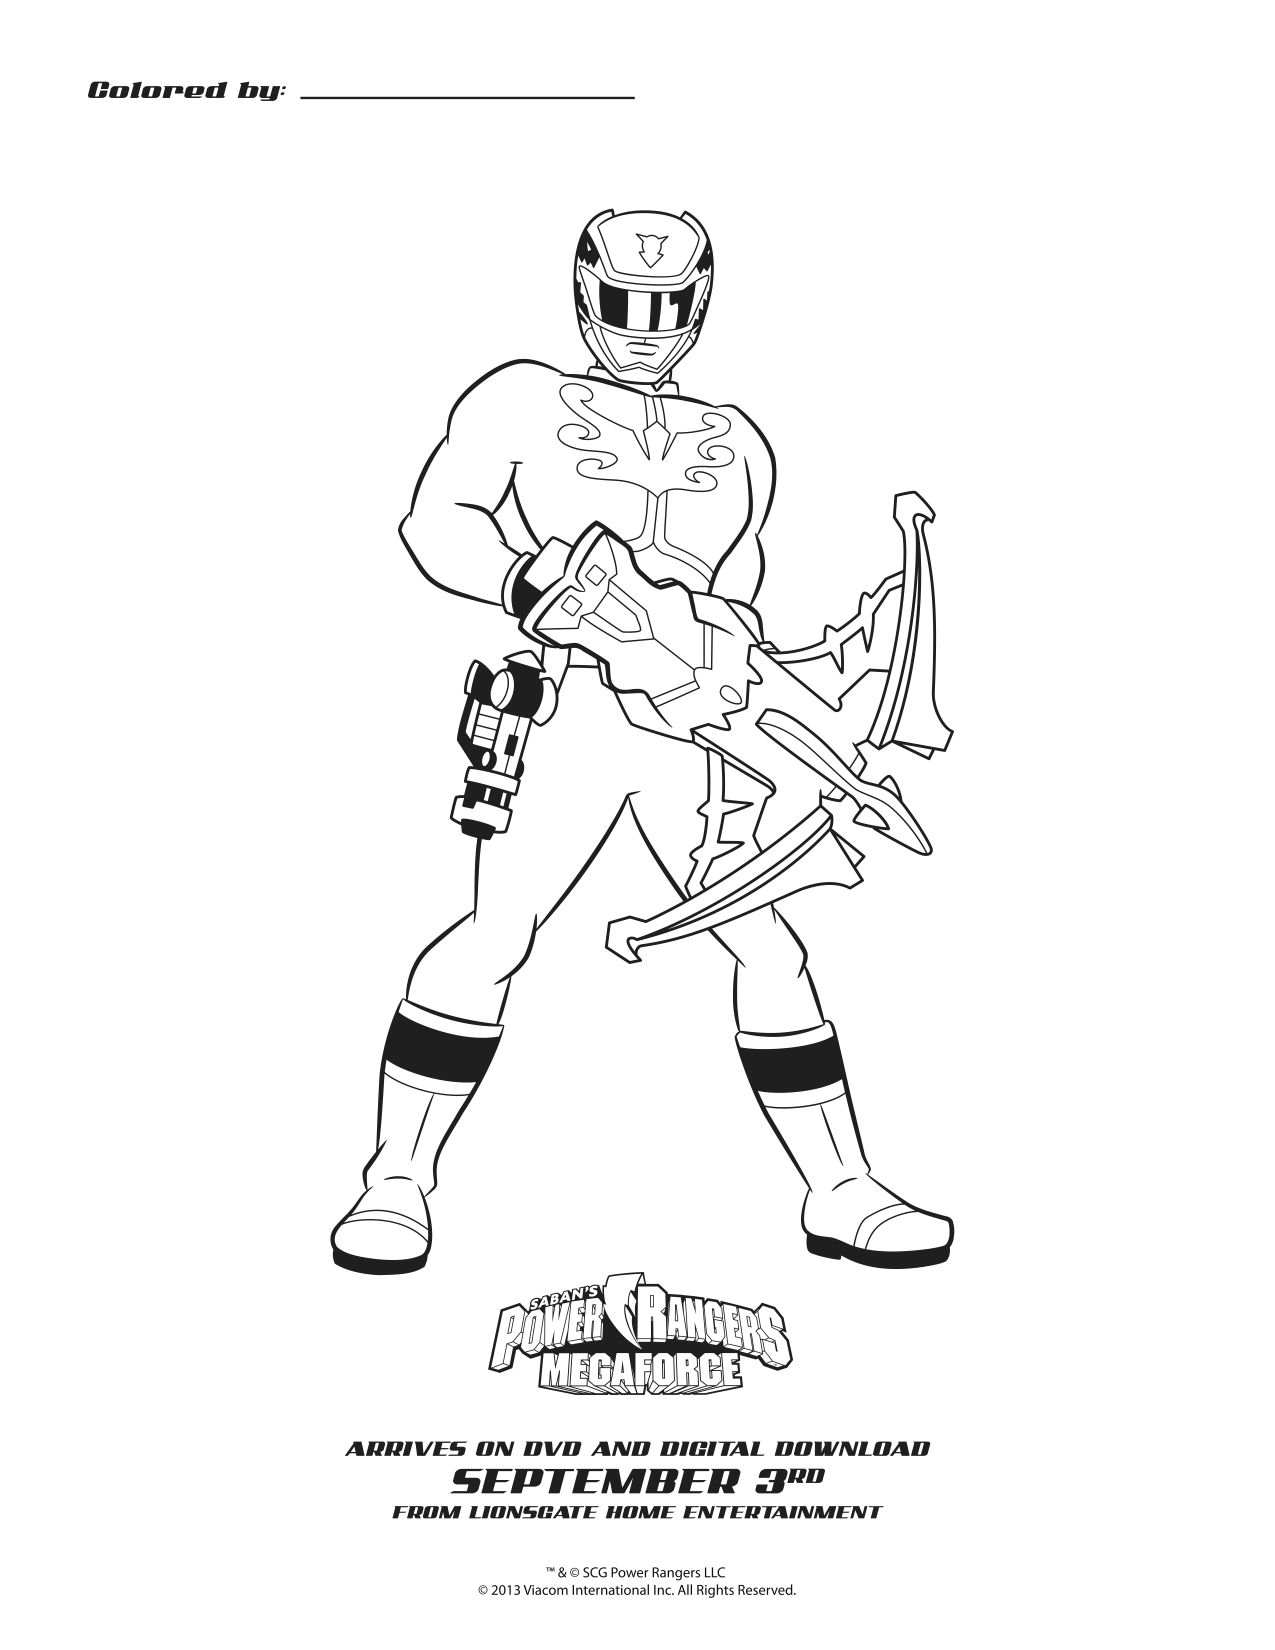 Coloring pages power rangers free - Power Rangers Megaforce Blue Ranger Coloring Sheet